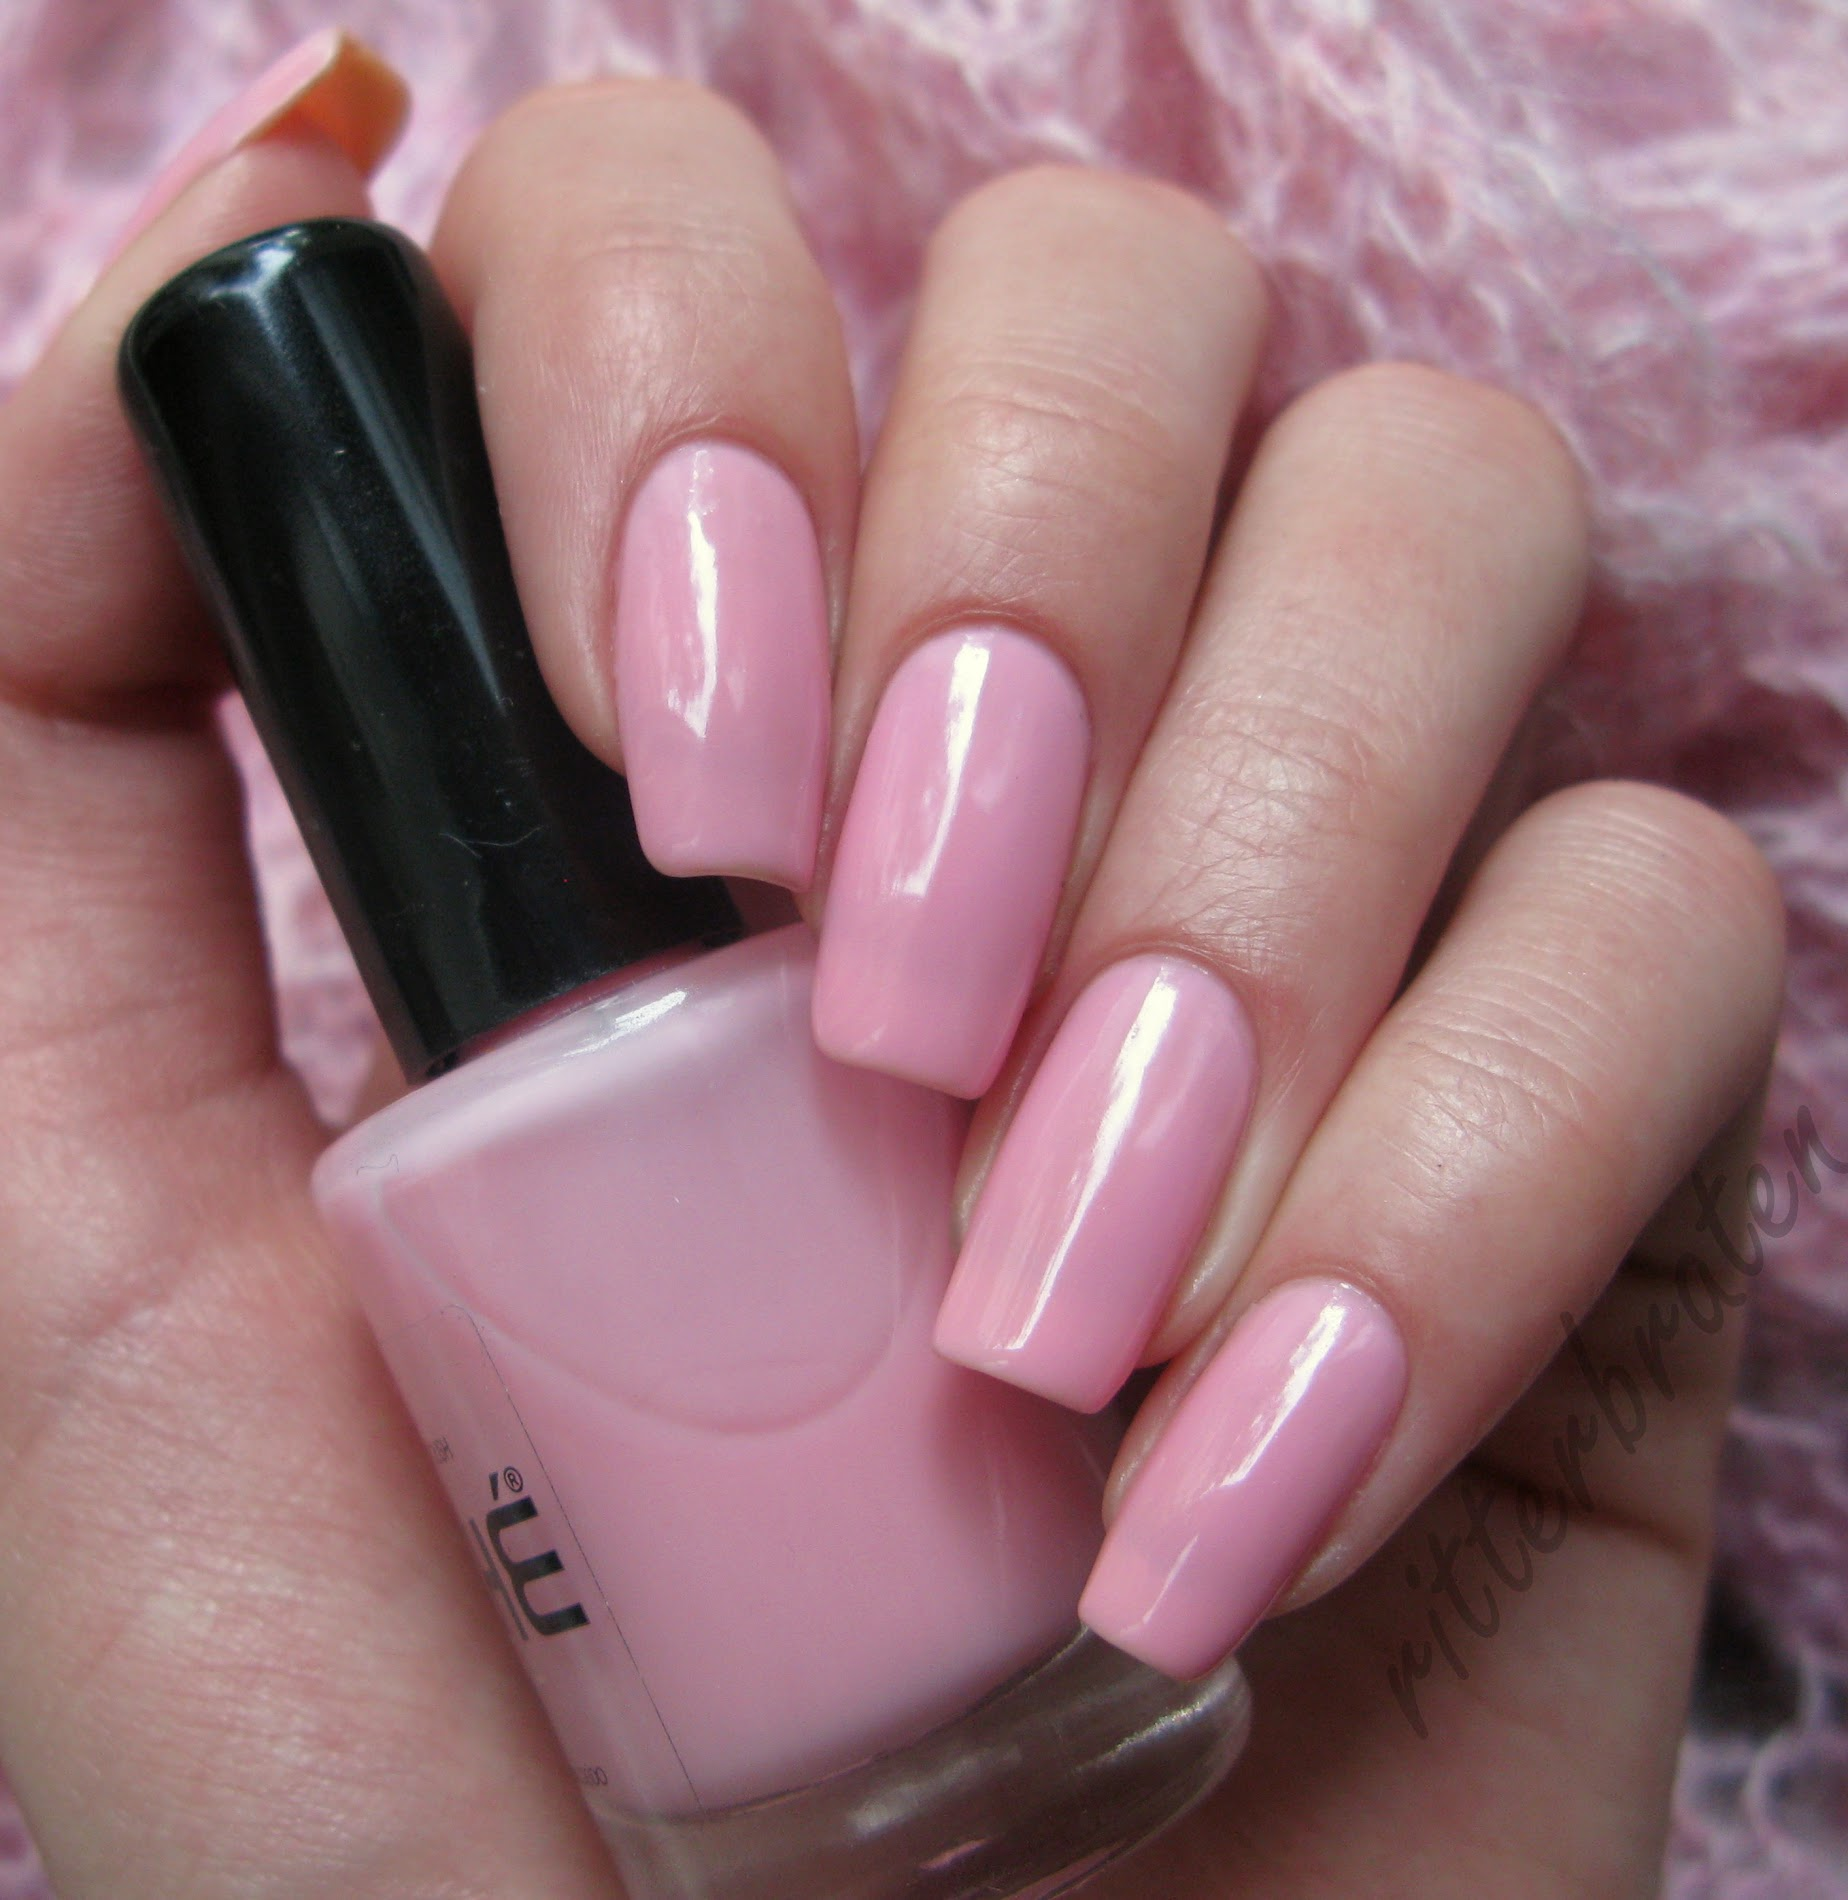 Clich Sonho verniz swatch nail polish